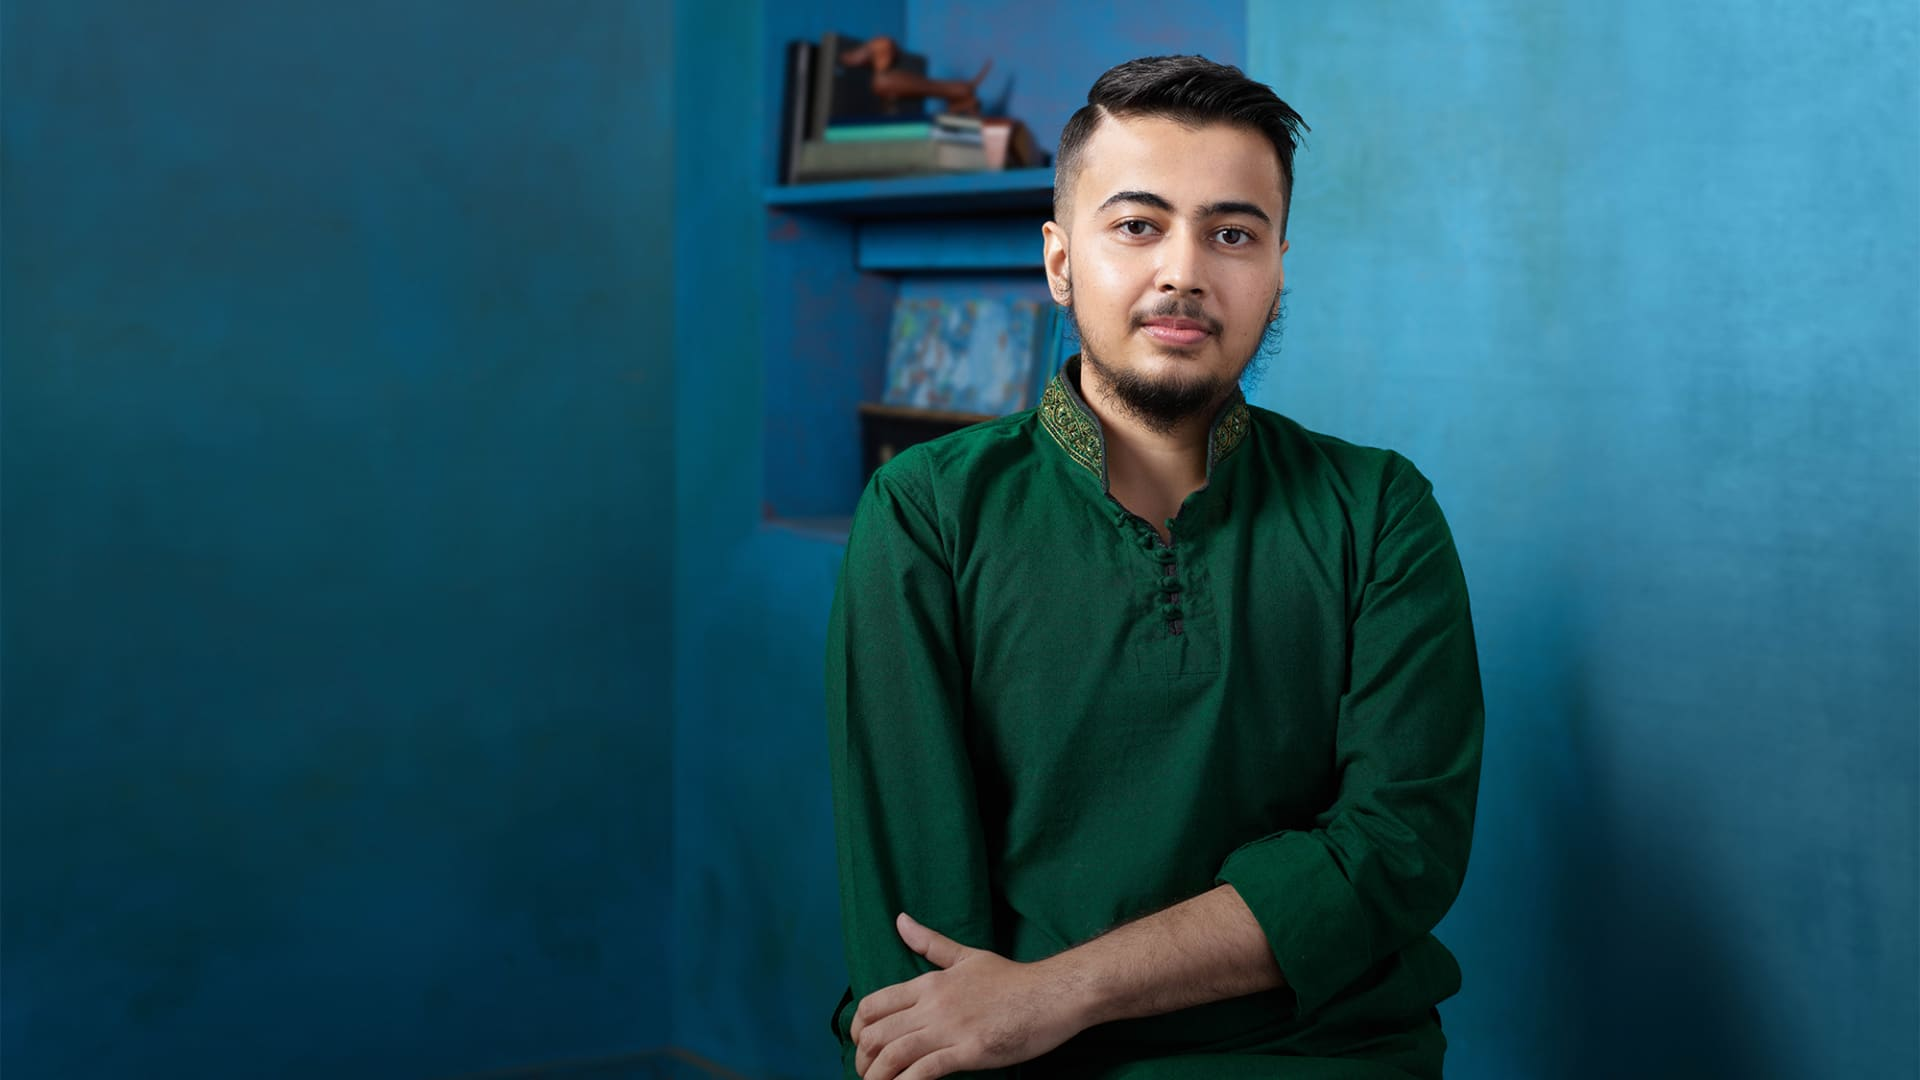 Mikail (they/their) is featured in Citi's advertising campaign for their chosen name feature, which offers transgender and non-binary customers the ability to use their chosen name on credit cards.